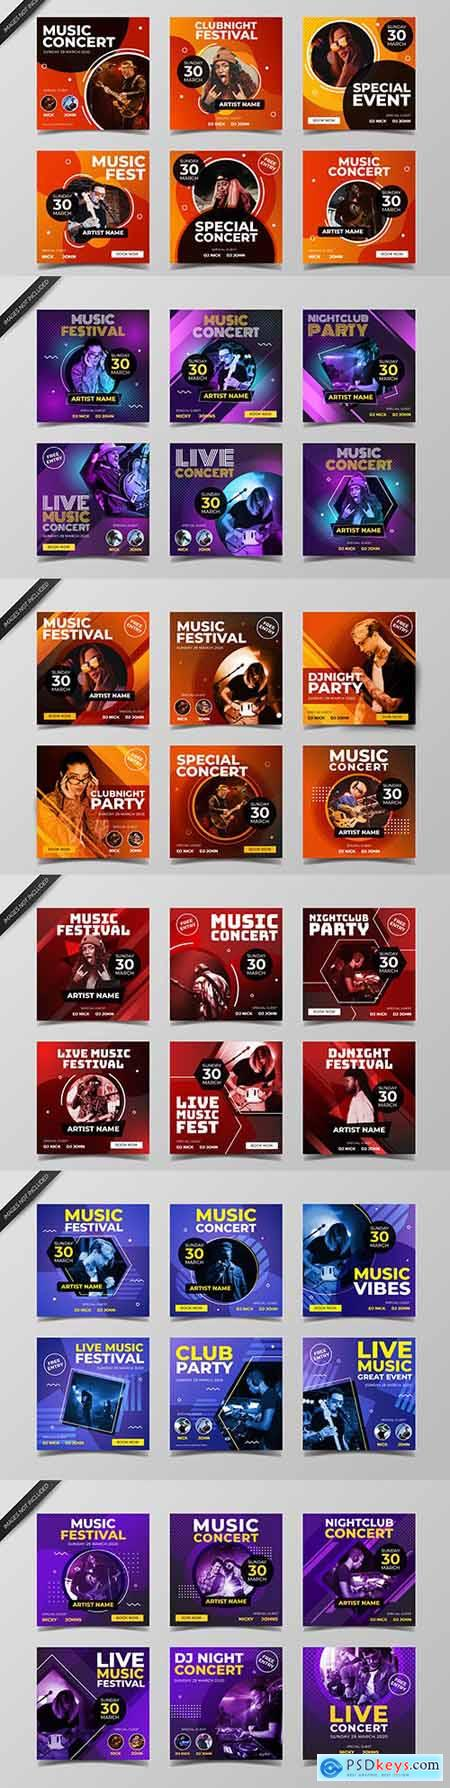 Music nightclub and live concert design template